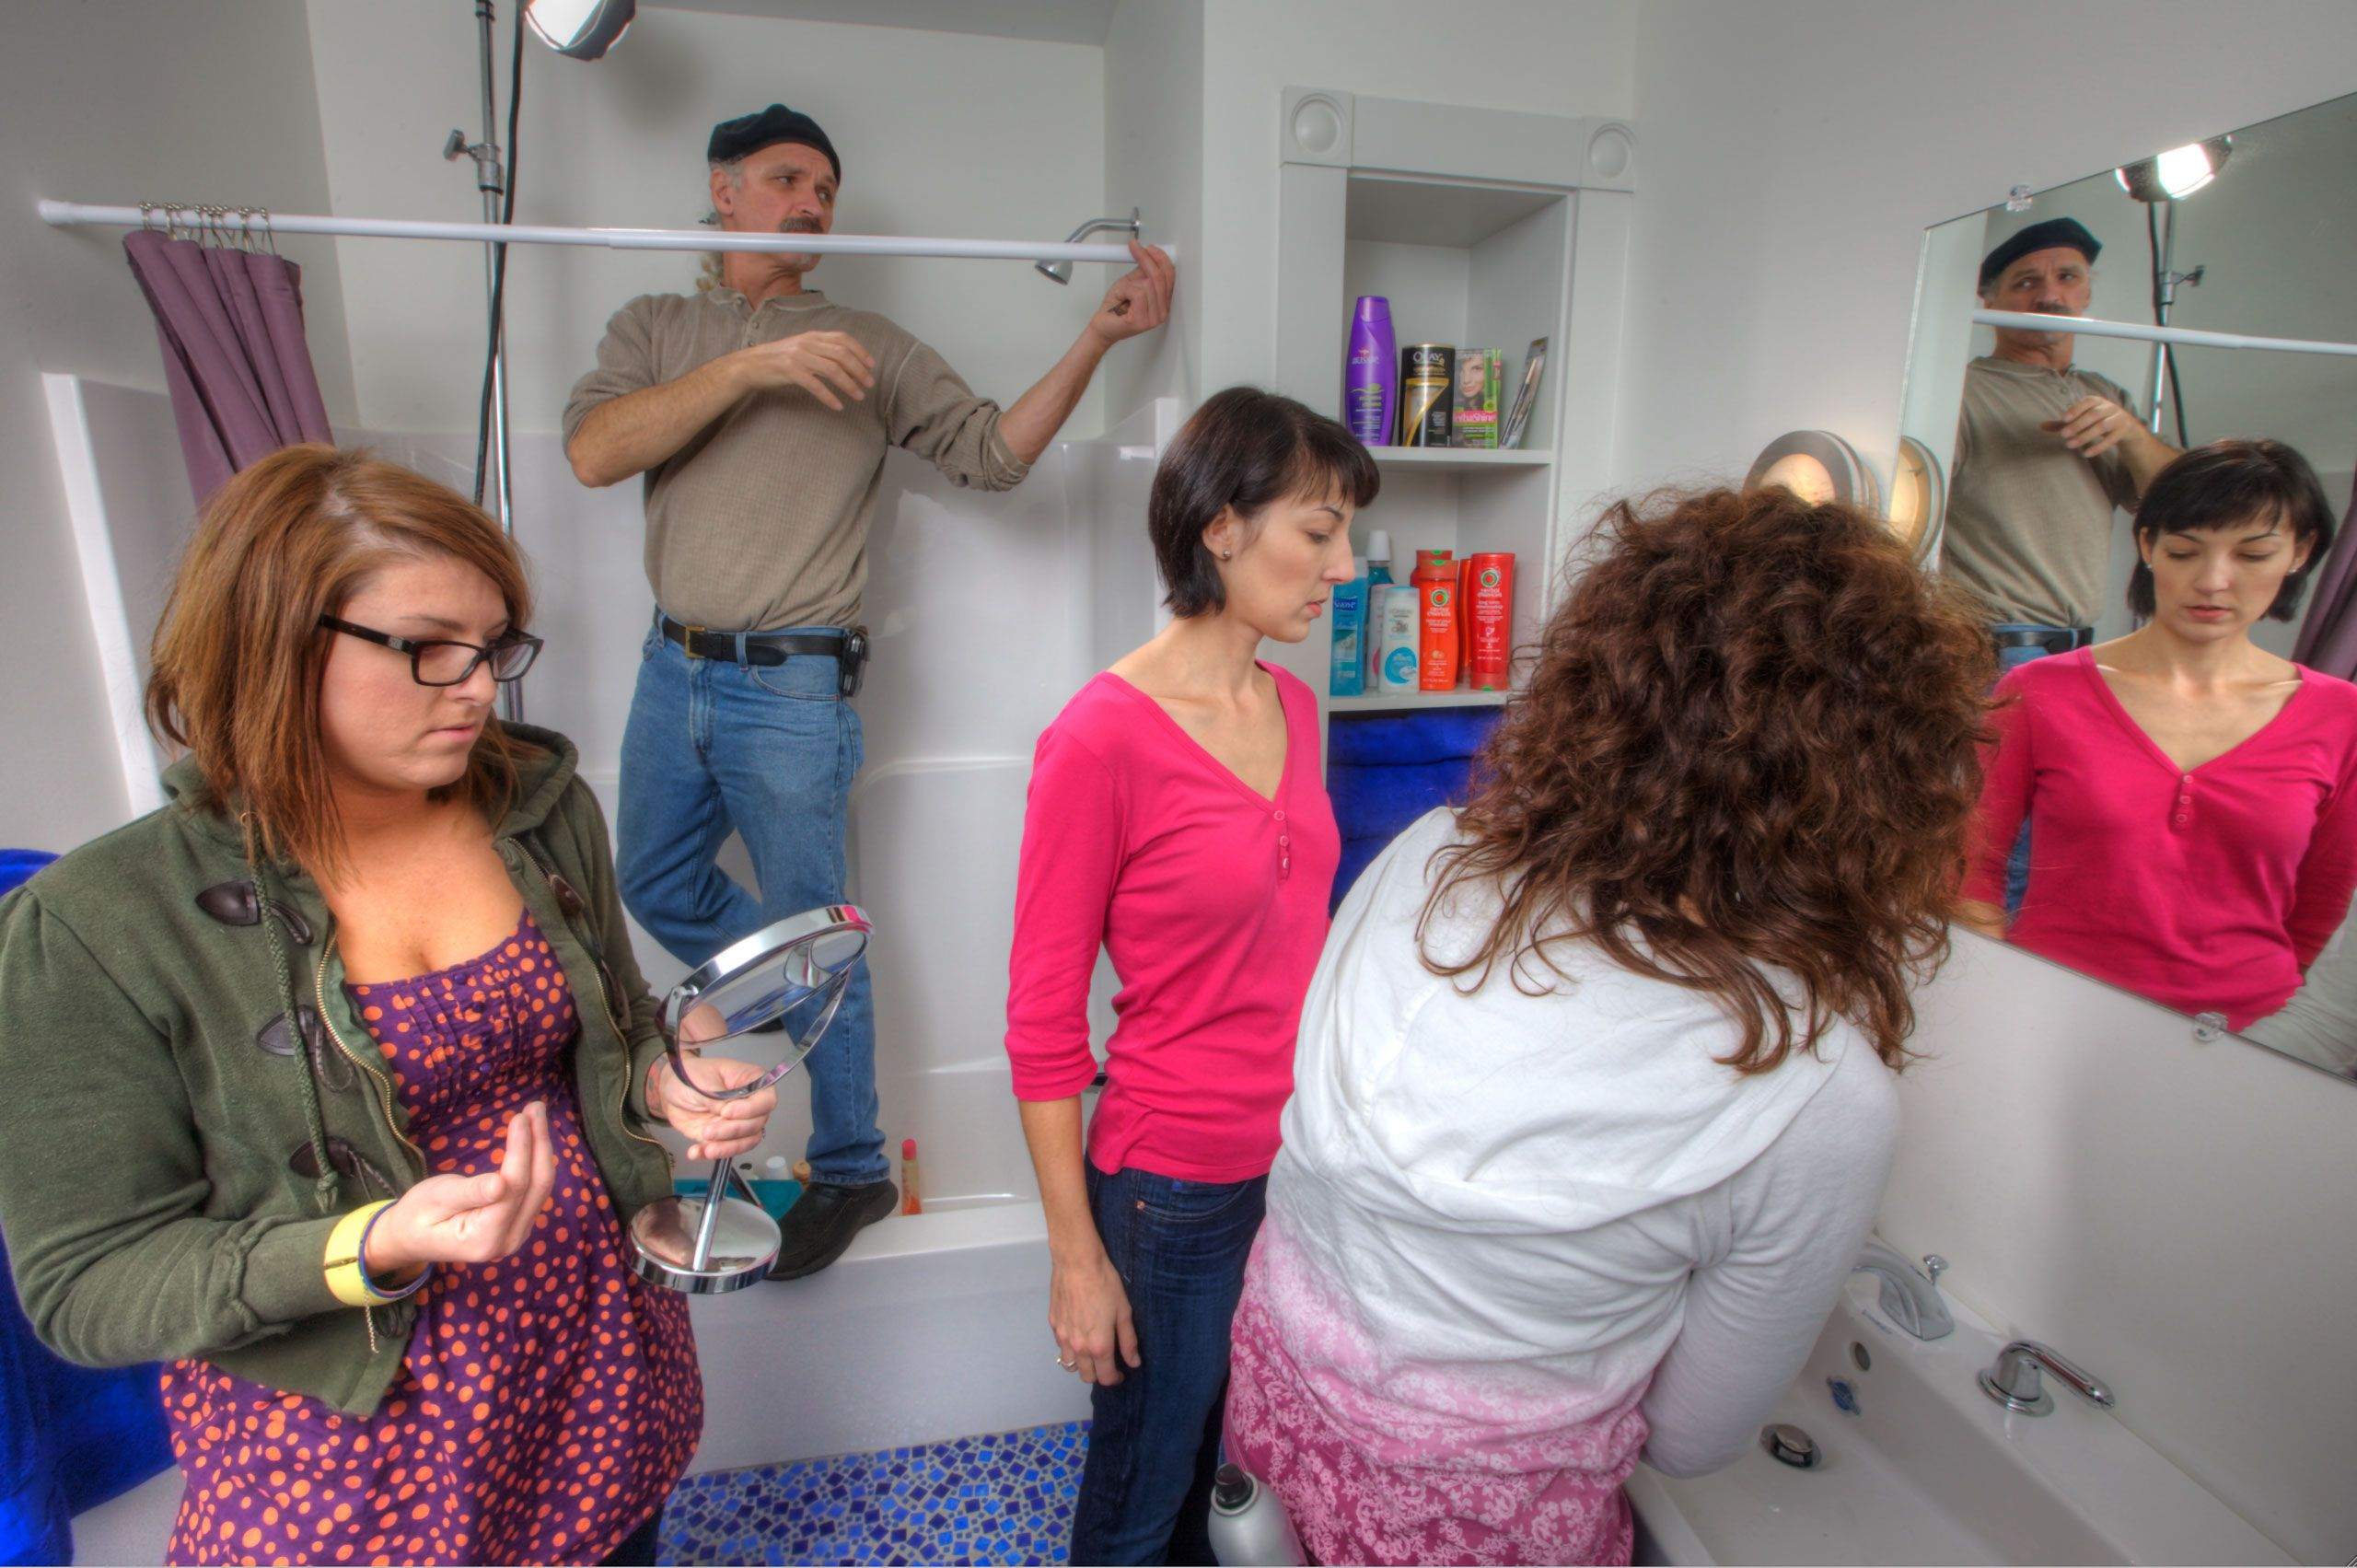 make up and beaty Photoshoot in a small bathroom